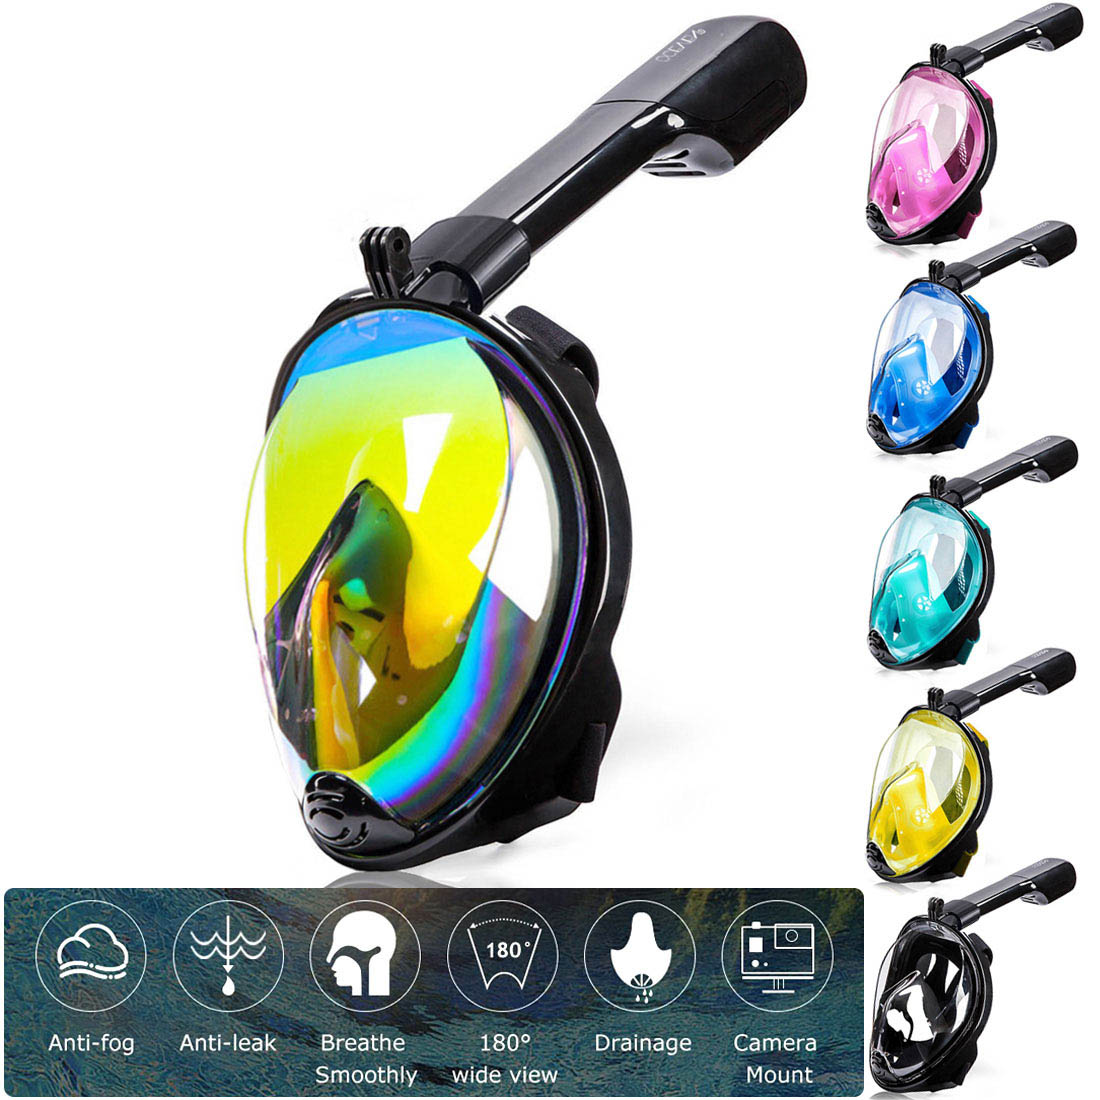 2019 New Diving Mask Scuba Mask Underwater Anti Fog Full Face Snorkeling Mask Women Men Kids  Swimming Snorkel Diving Equipment